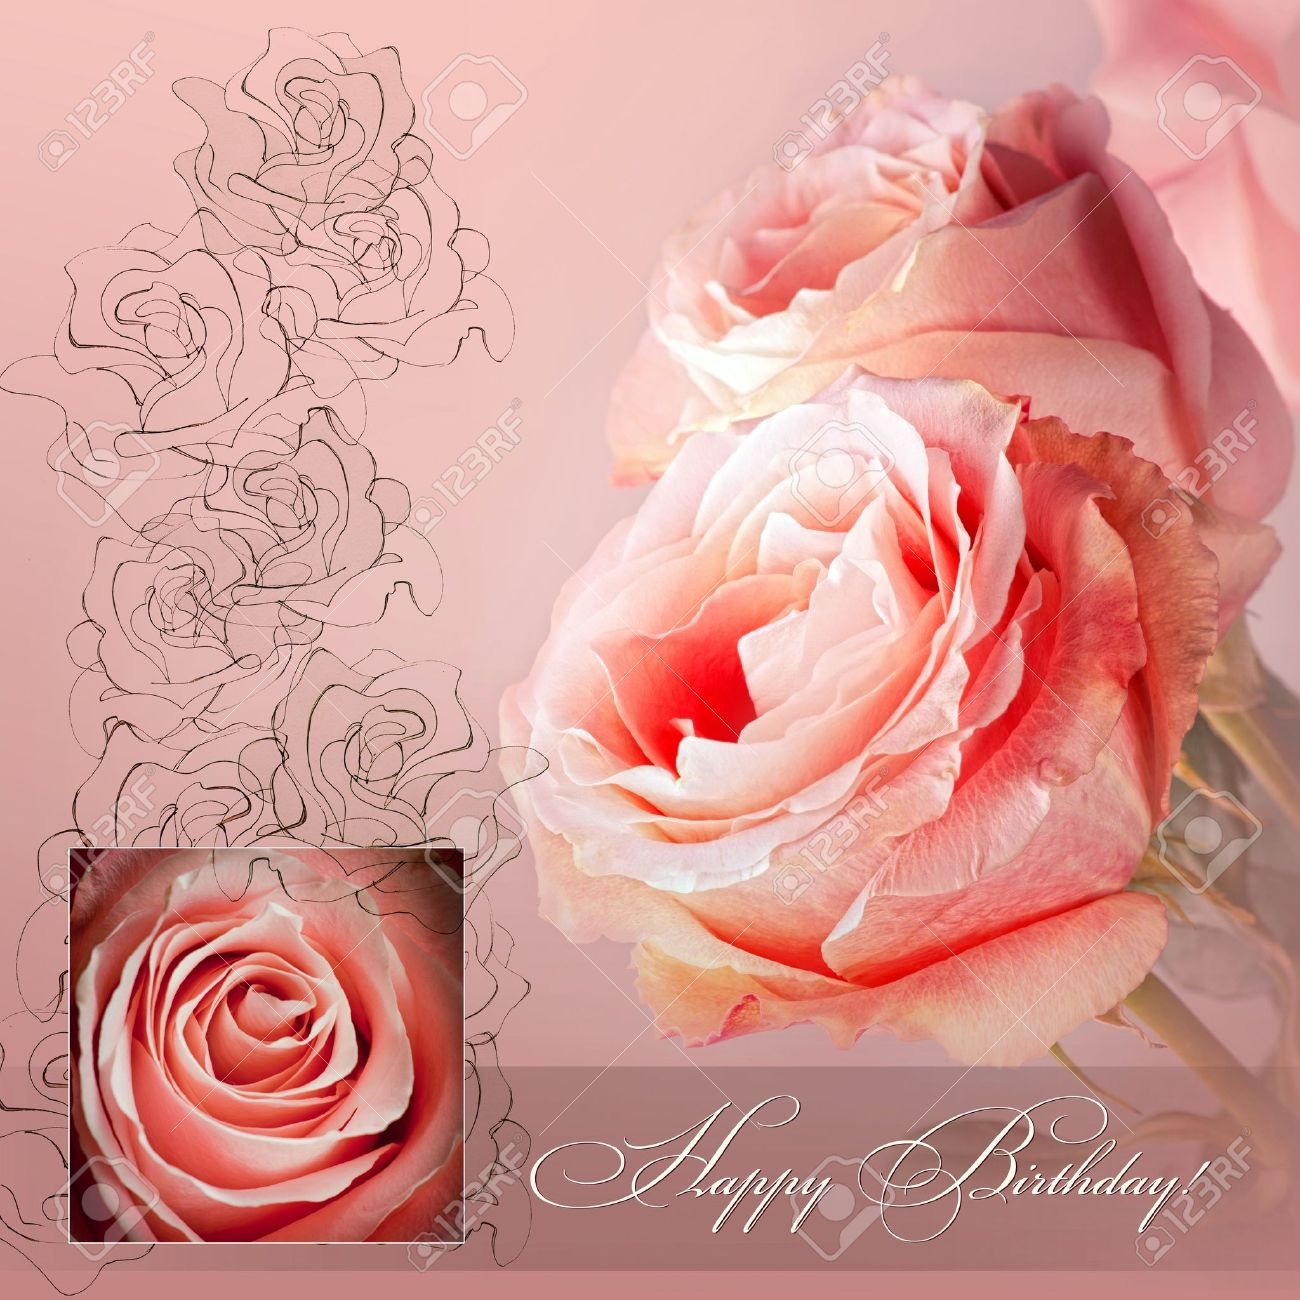 happy birthday pink roses ; 9613773-happy-birthday-greetings-with-pink-roses